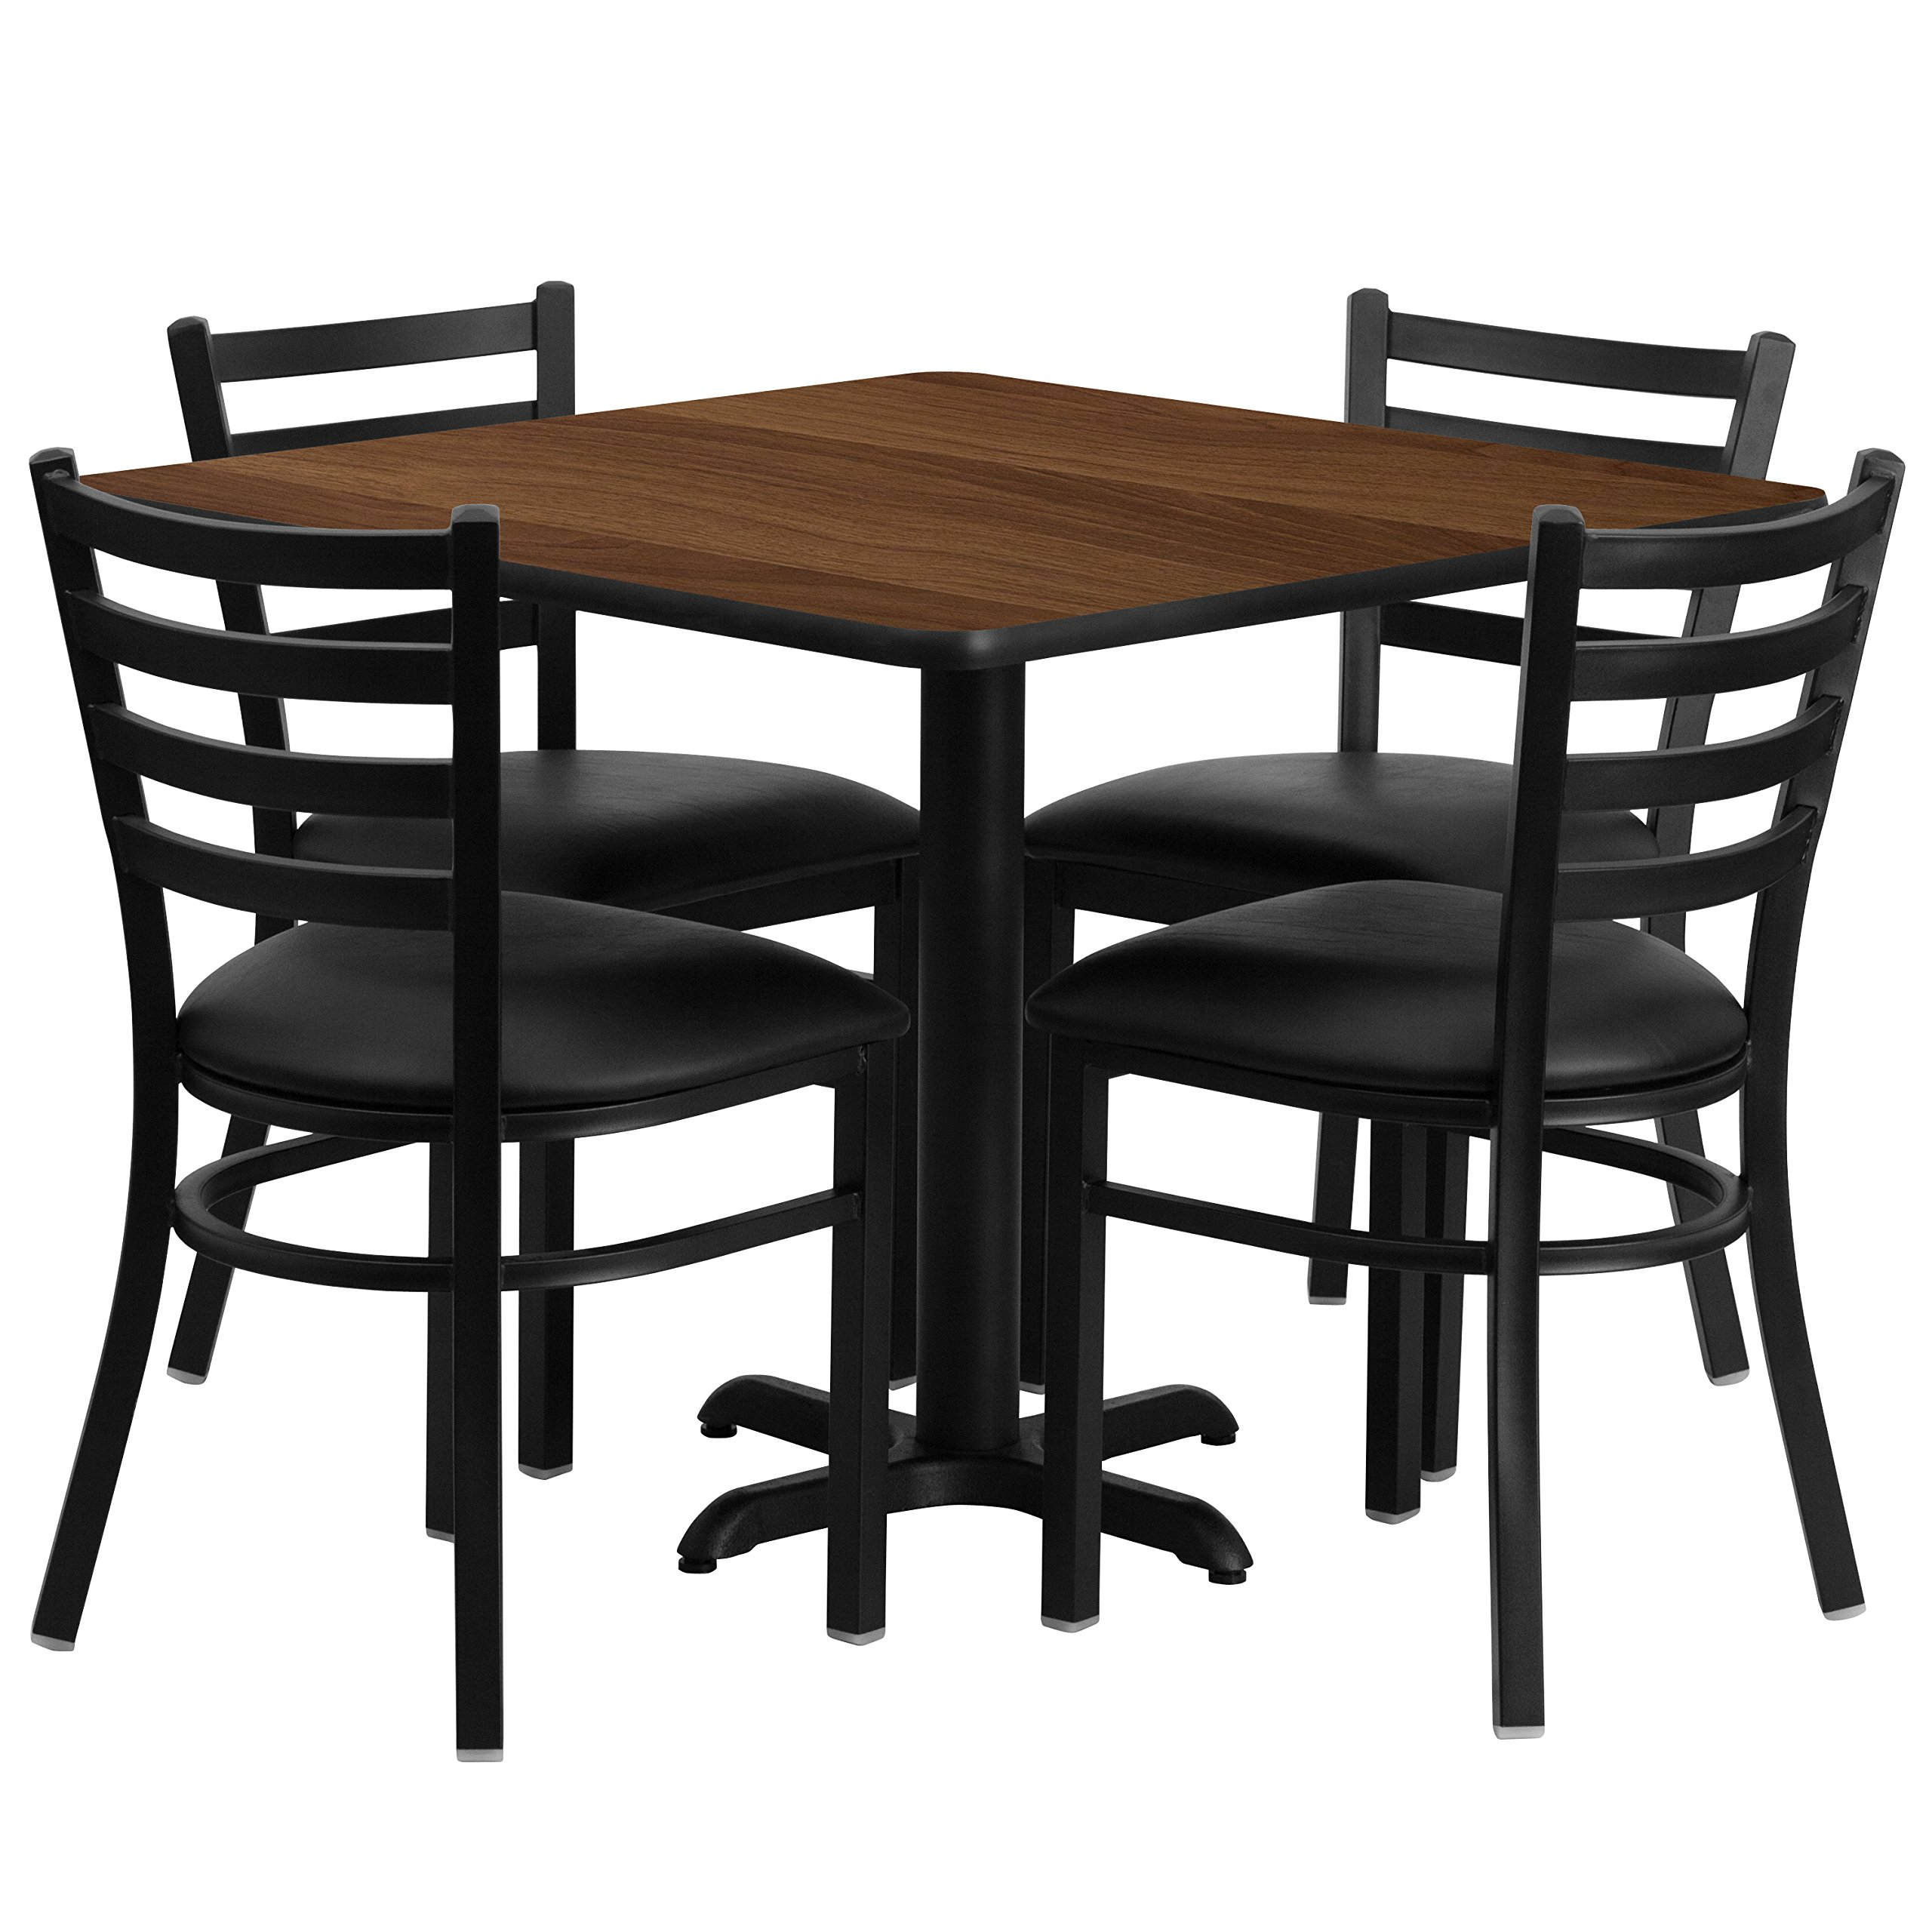 Flash Furniture 36'' Square Walnut Laminate Table Set with 4 Ladder Back Metal Chairs - Black Vinyl Seat by Flash Furniture (Image #1)